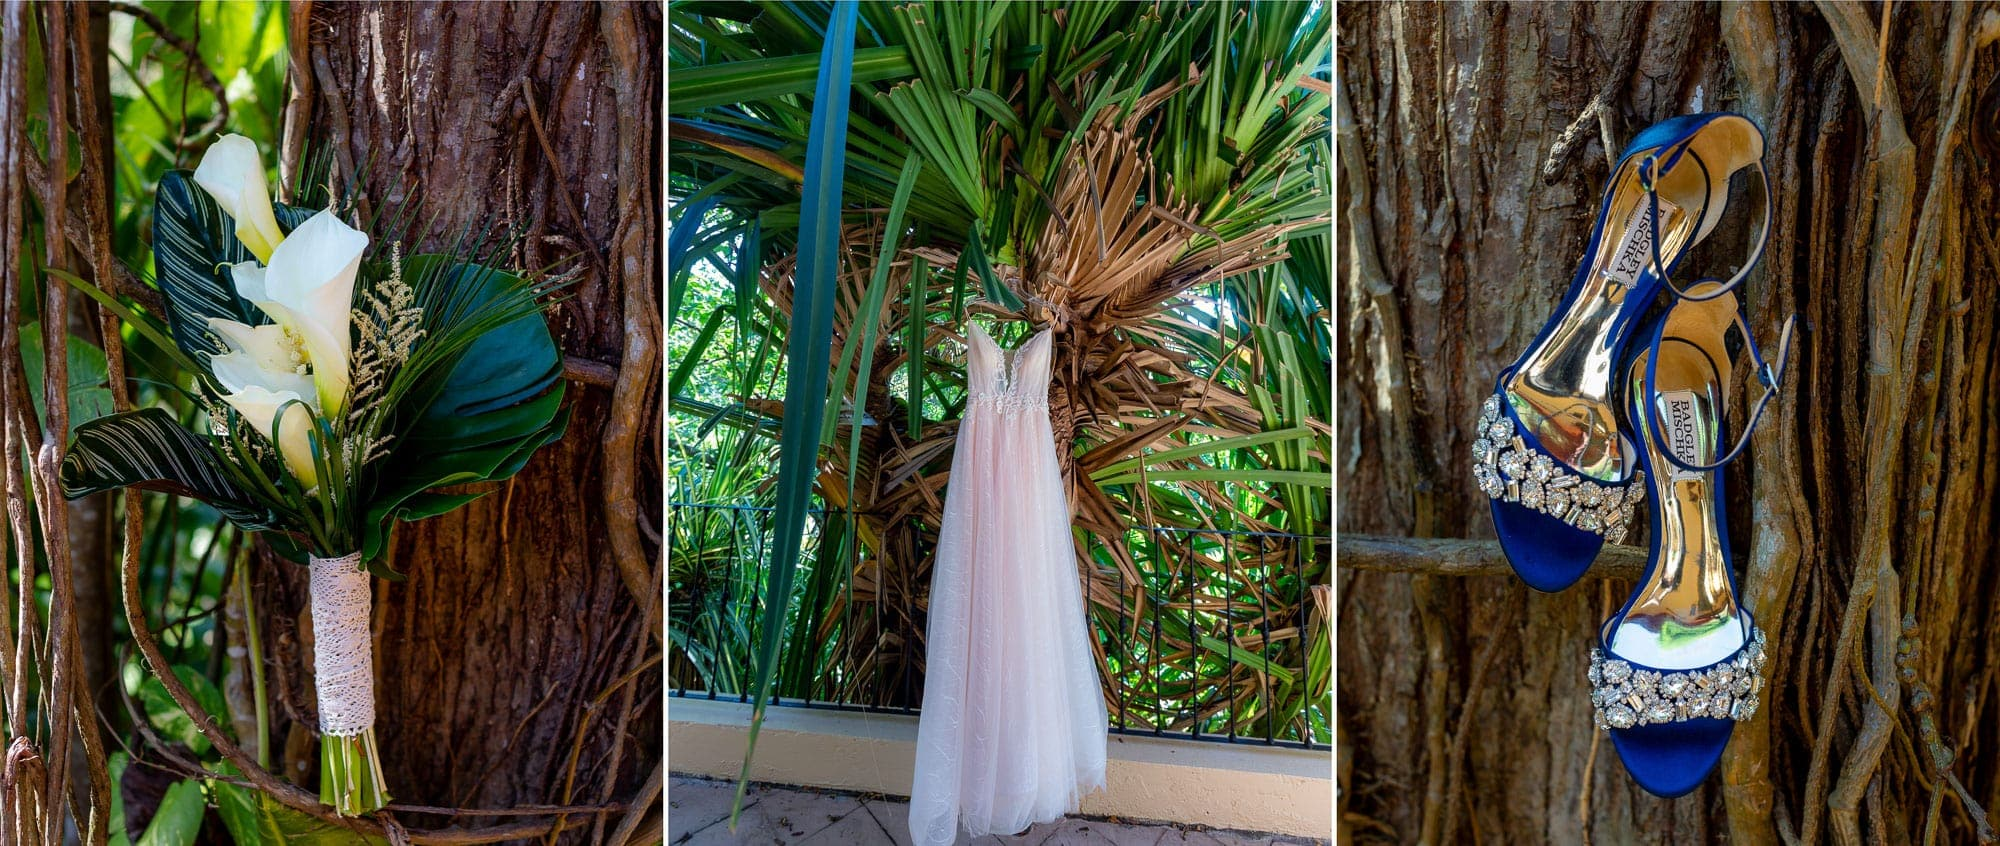 details of a wedding in the jungle at Doce Lunas